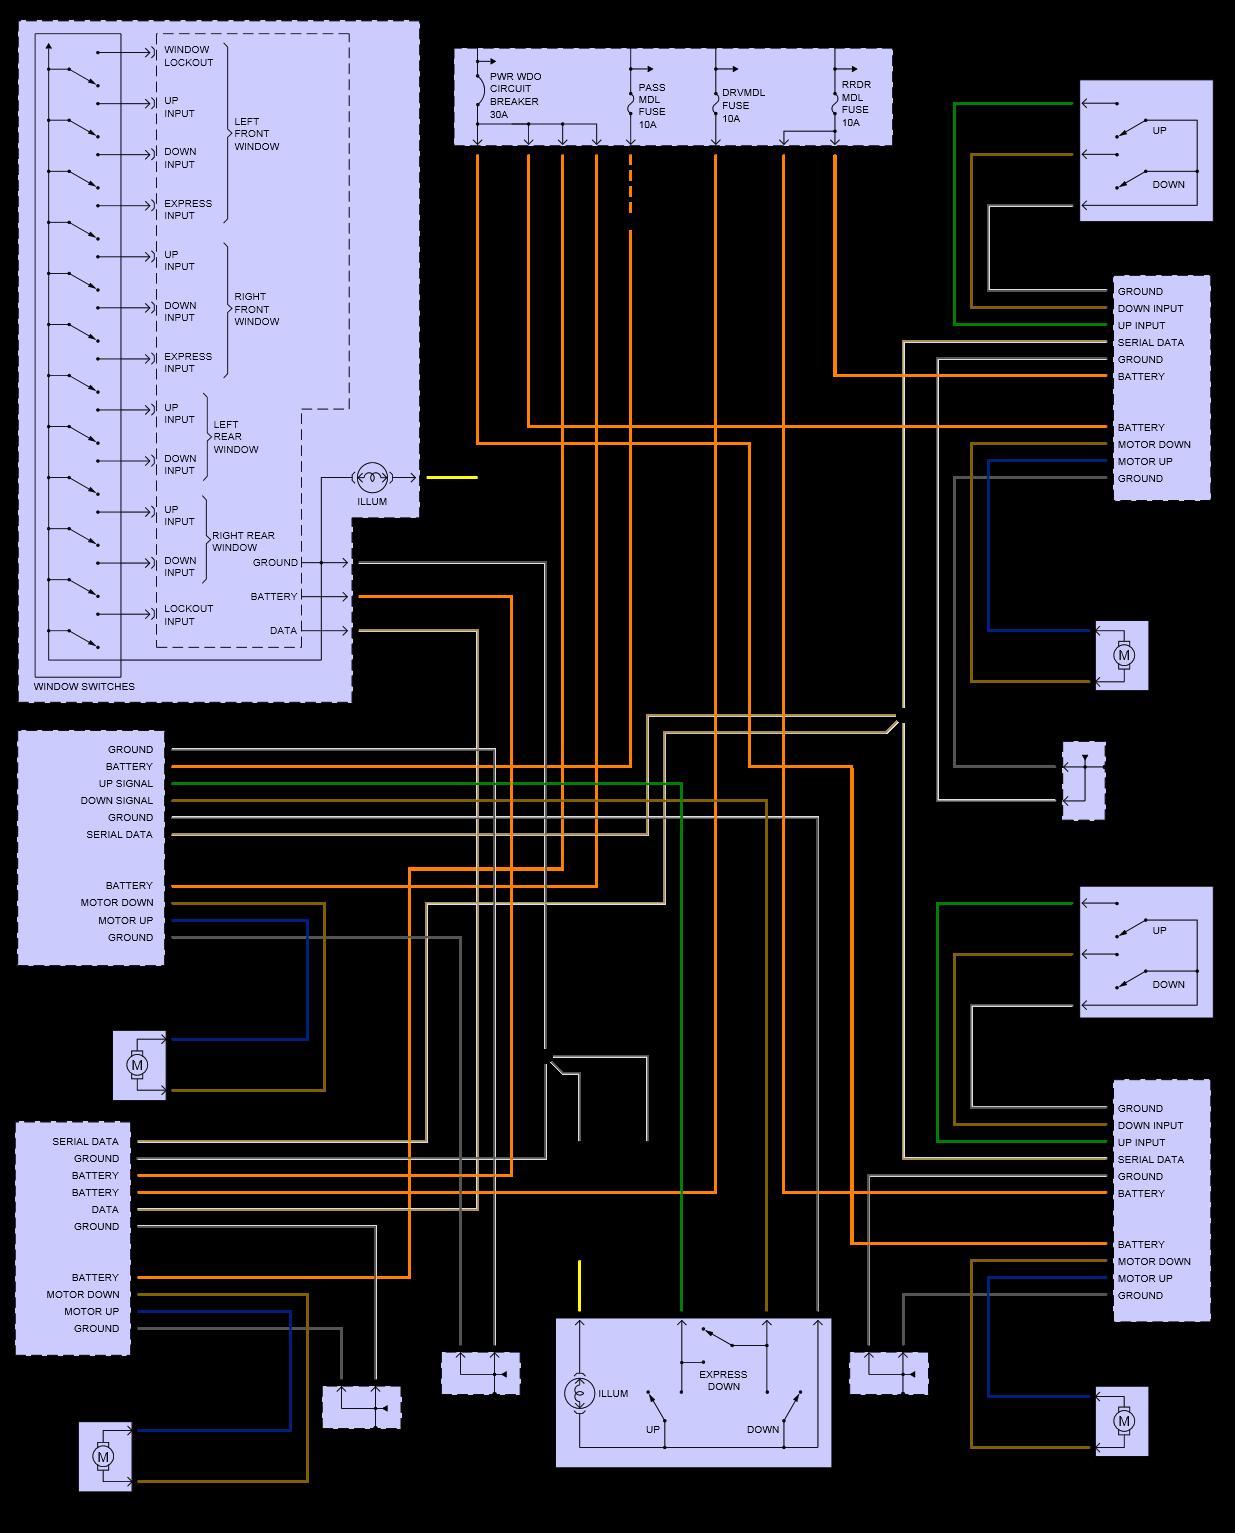 hight resolution of 2001 buick century stereo wiring diagram collection stereo wiring diagram for 2002 buick regal throughout